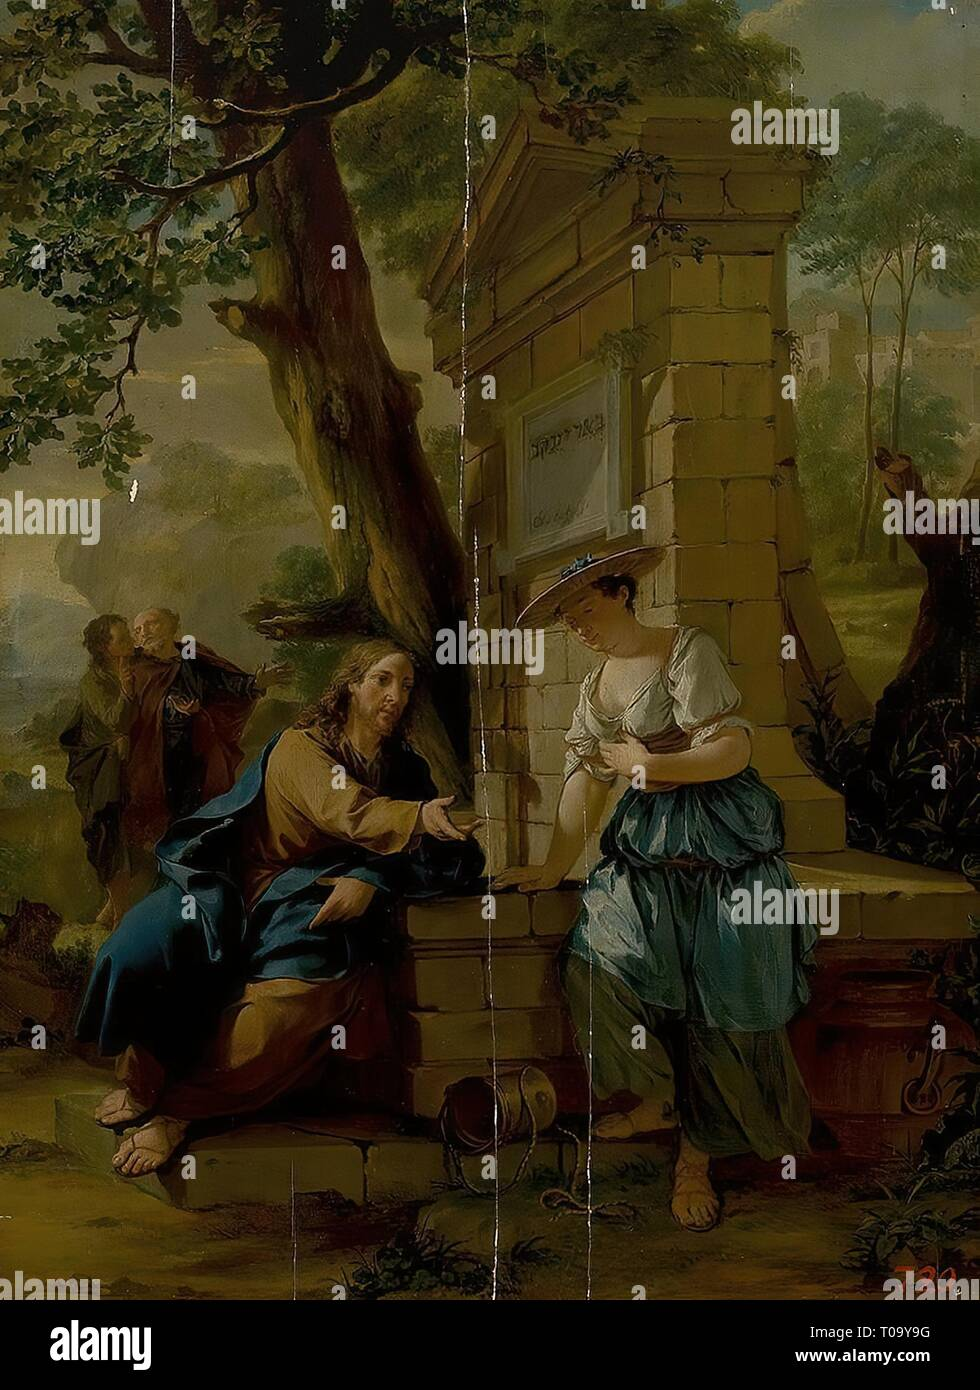 'Jesus and the Samaritan Woman at the Well'. Holland, Circa 1740. Dimensions: 52x39,5 cm. Museum: State Hermitage, St. Petersburg. Author: Nicolaes Verkolje. - Stock Image